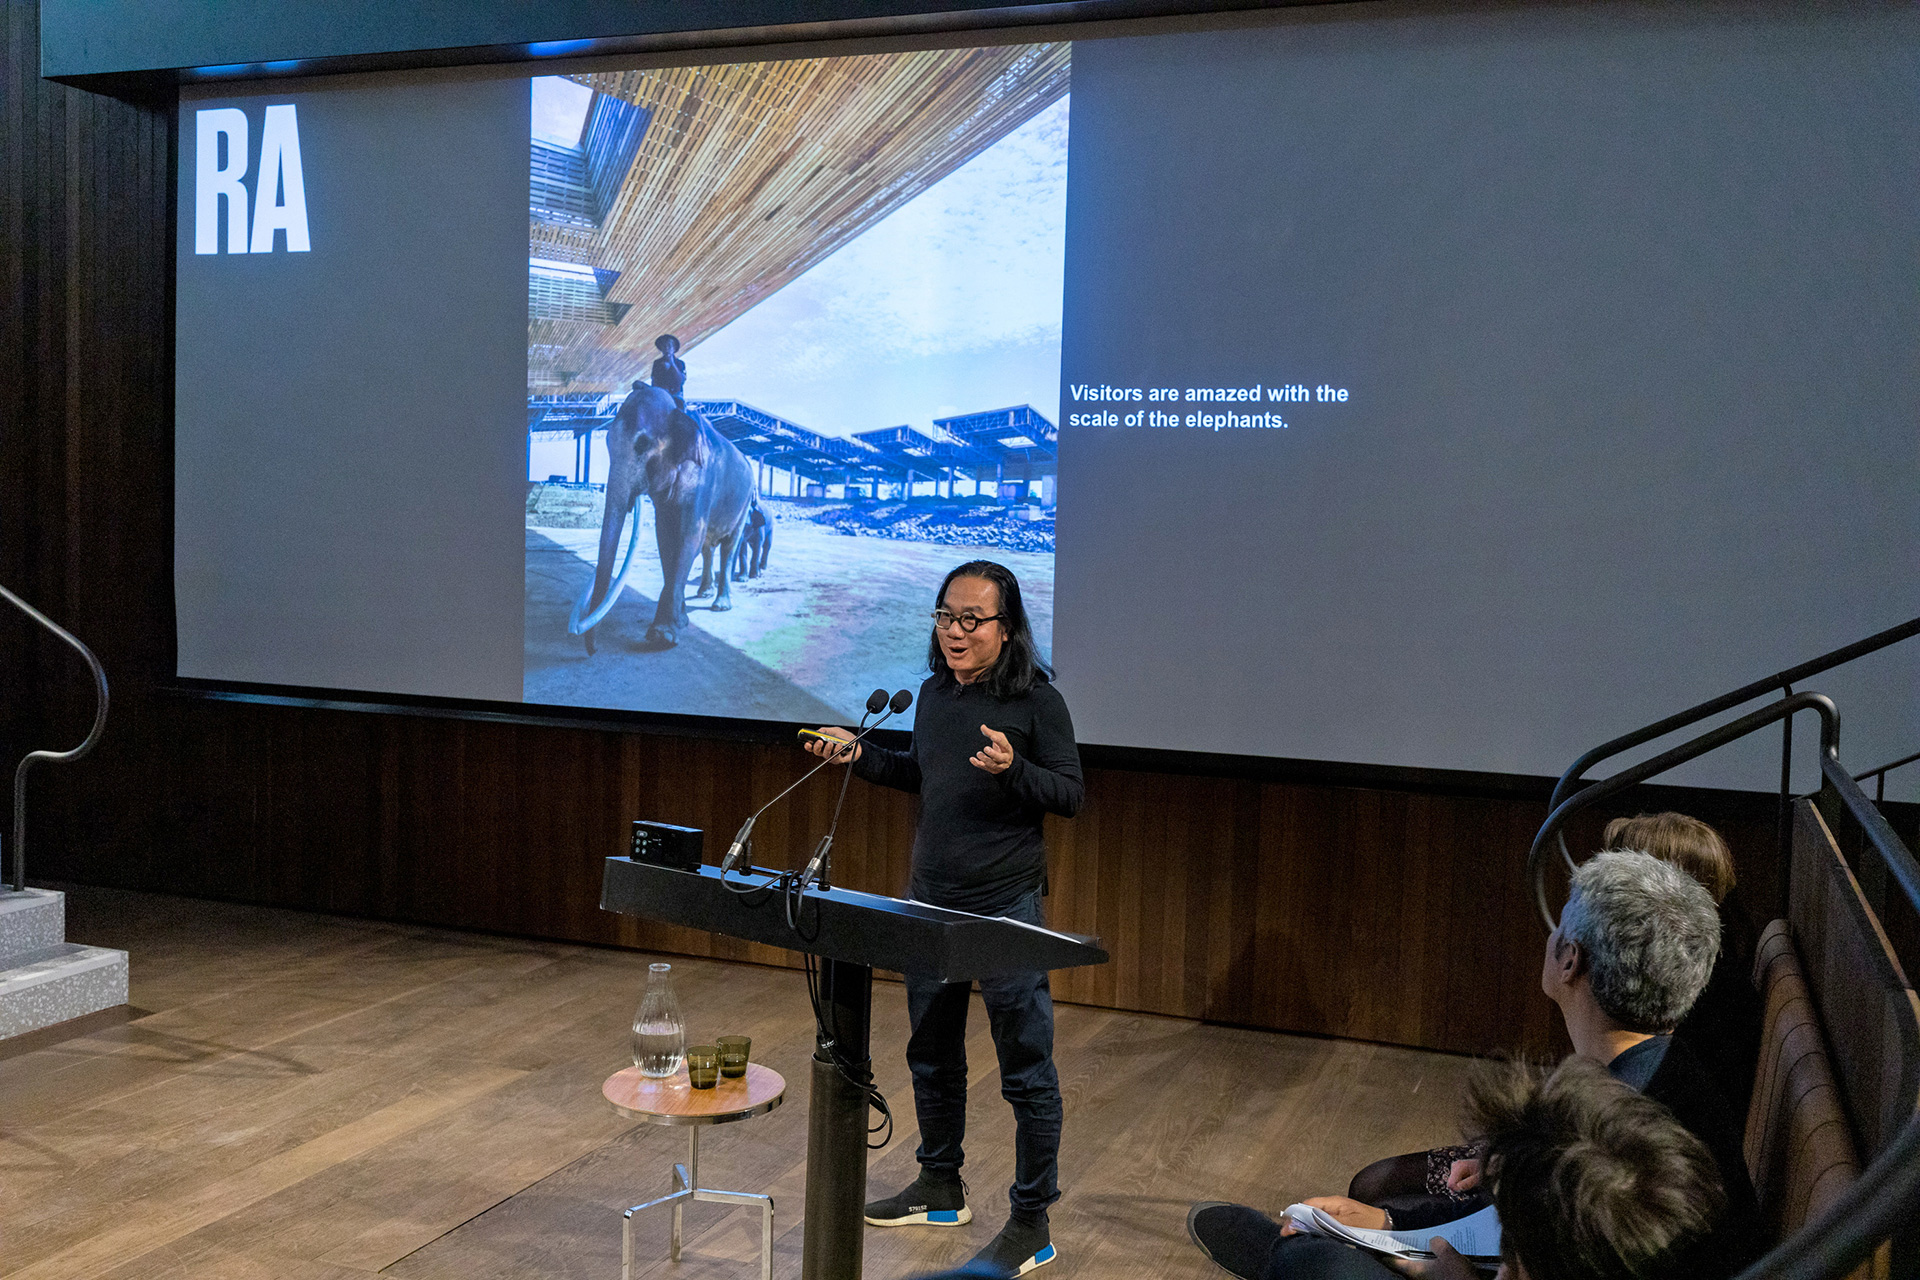 Boonserm Premthada, founder of Bangkok Project Studio, presenting Elephant World to a public audience at the Royal Academy | Royal Academy of Arts Architecture Awards| STIR